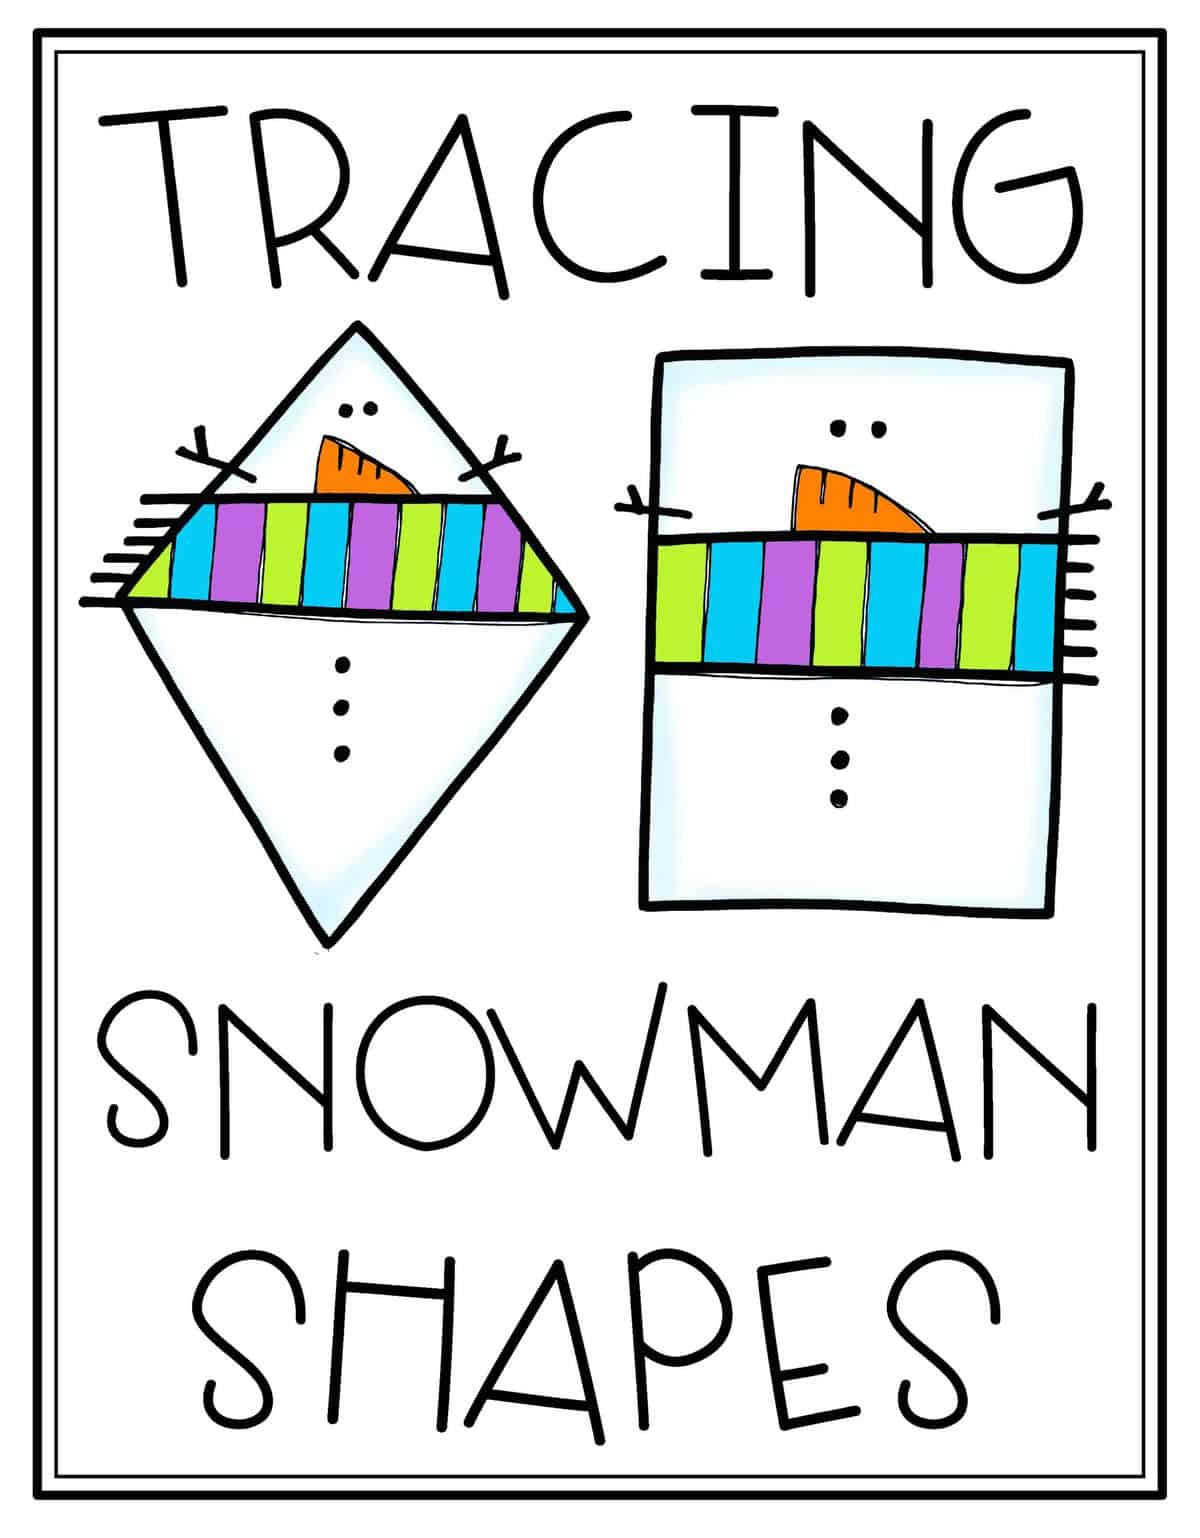 Tracing Snowman Shapes Activity